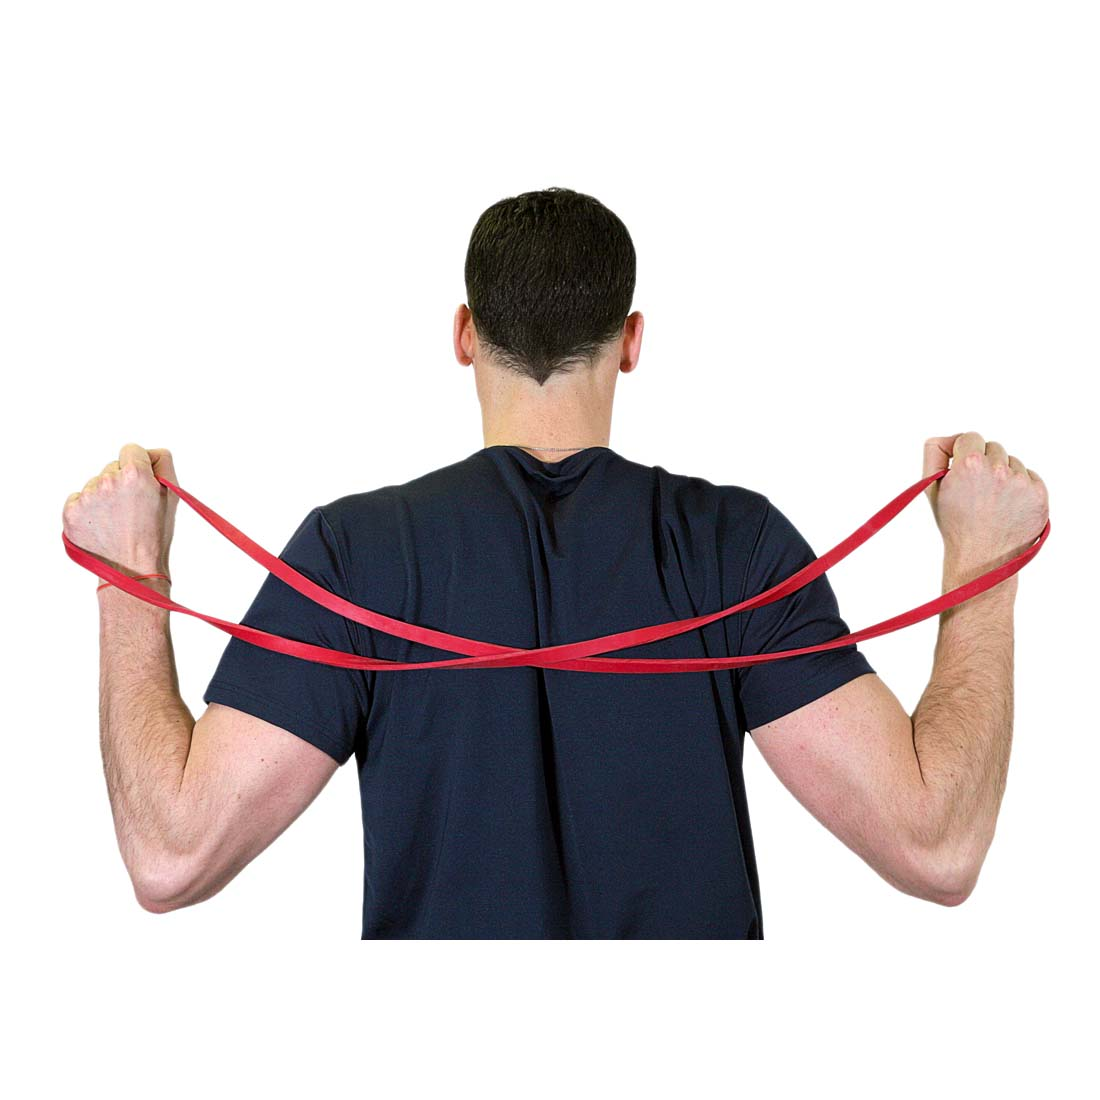 Bench Press Resistance Bands: Flat Bench Press With Bands